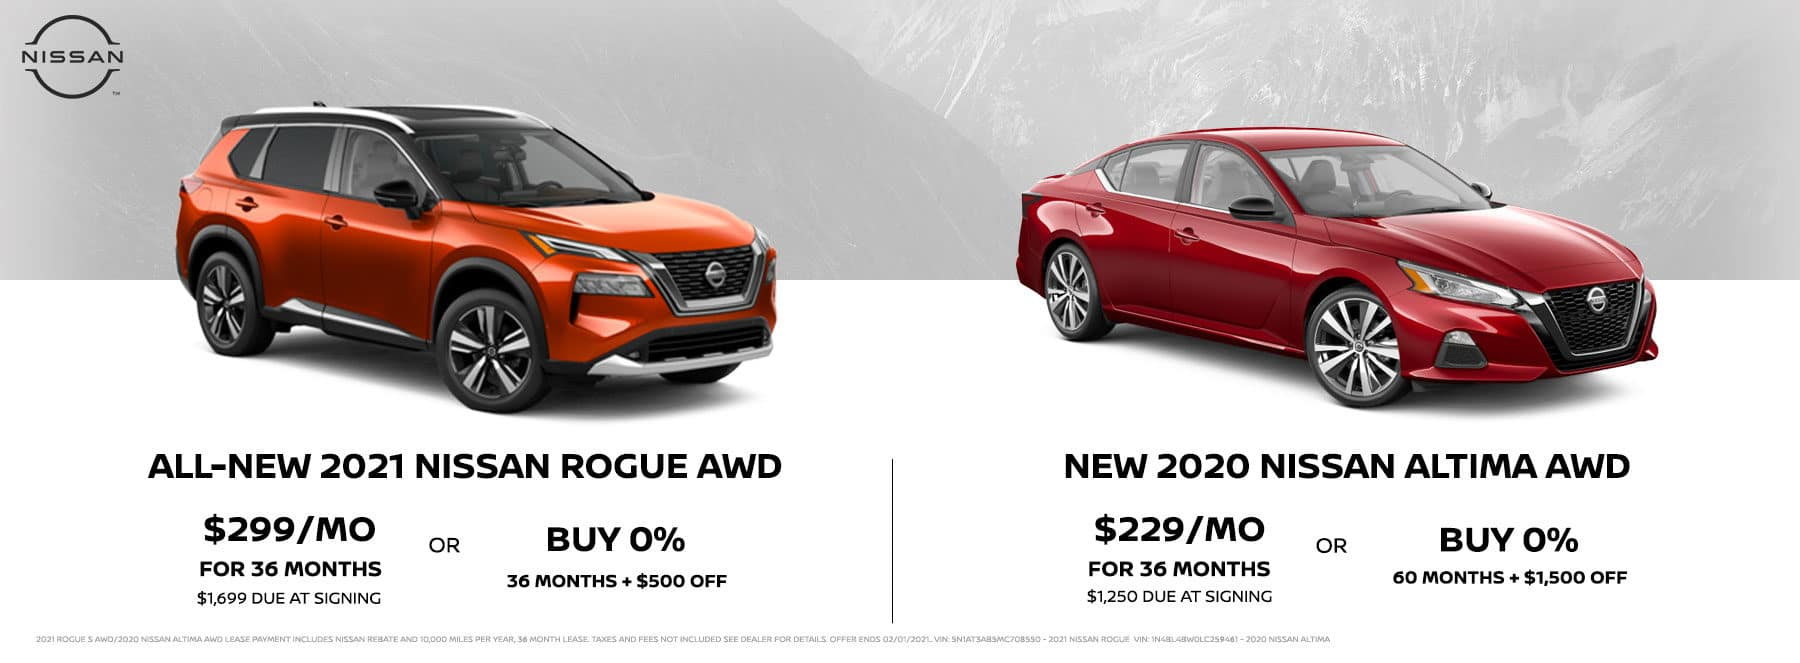 2021 Nissan Rogue AWD and 2020 Nissan Altima